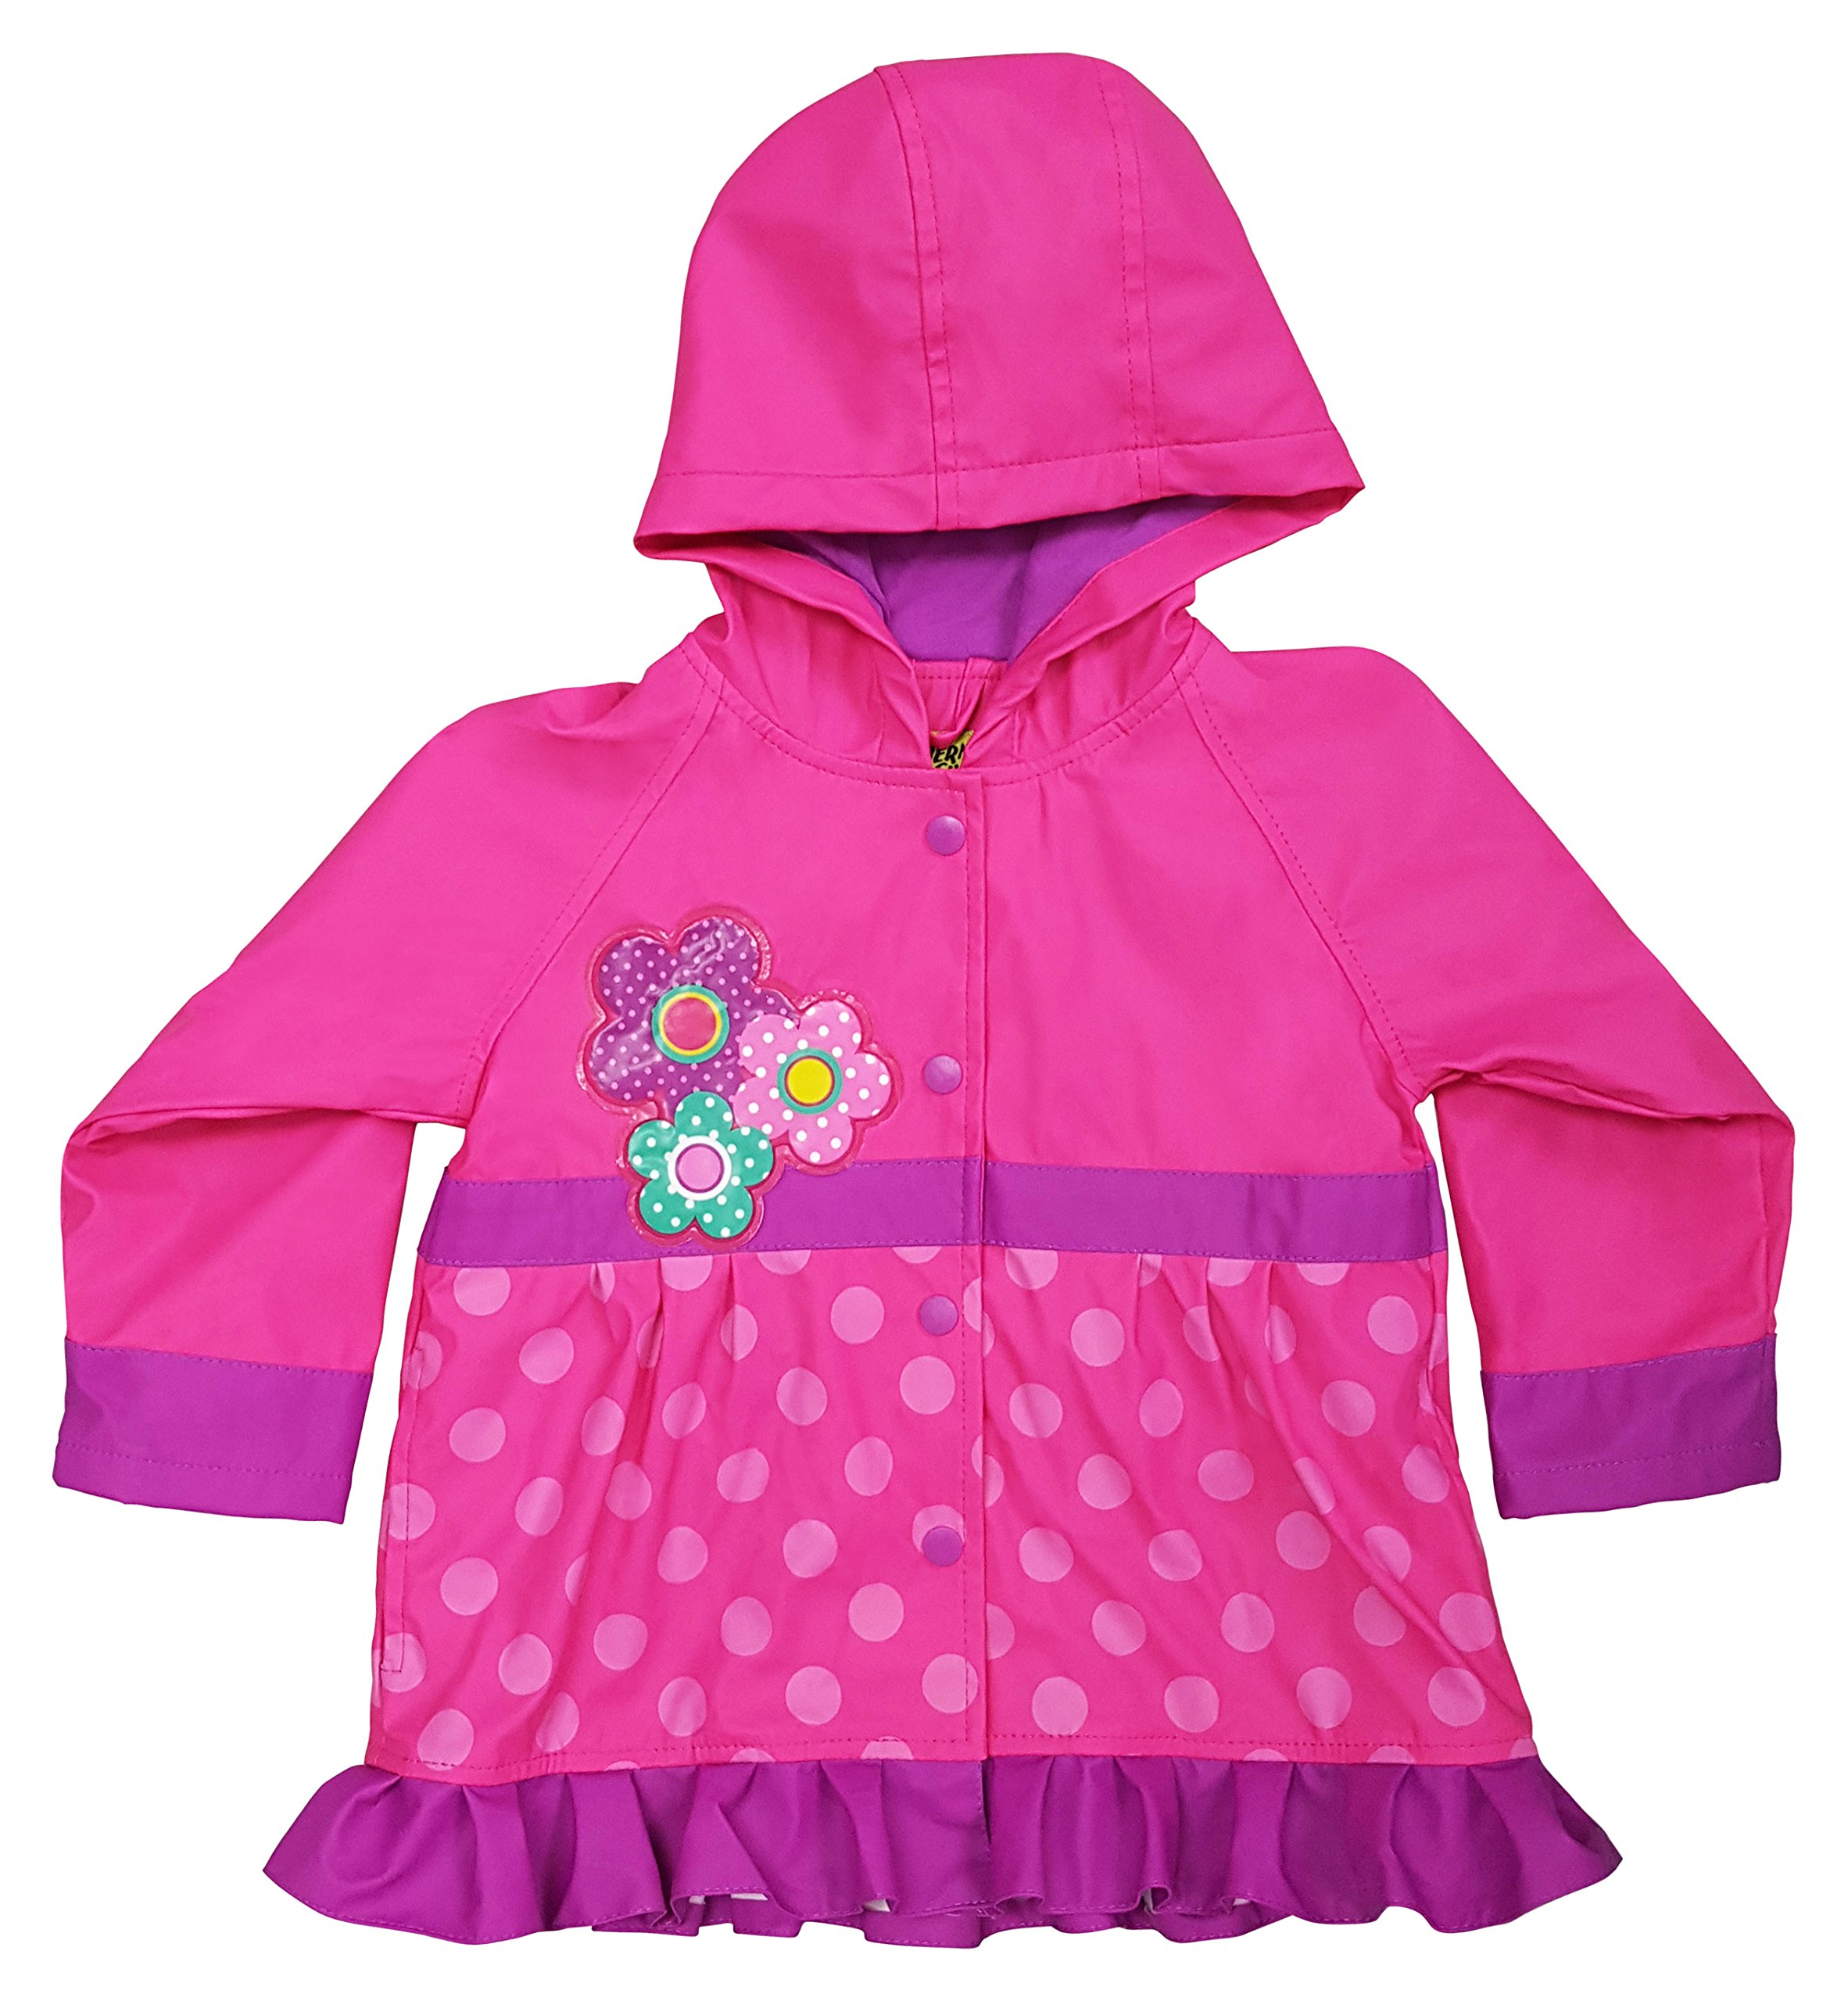 Western Chief Kids Soft Lined Character Rain Jackets, Flower Cutie, 3T by Western Chief